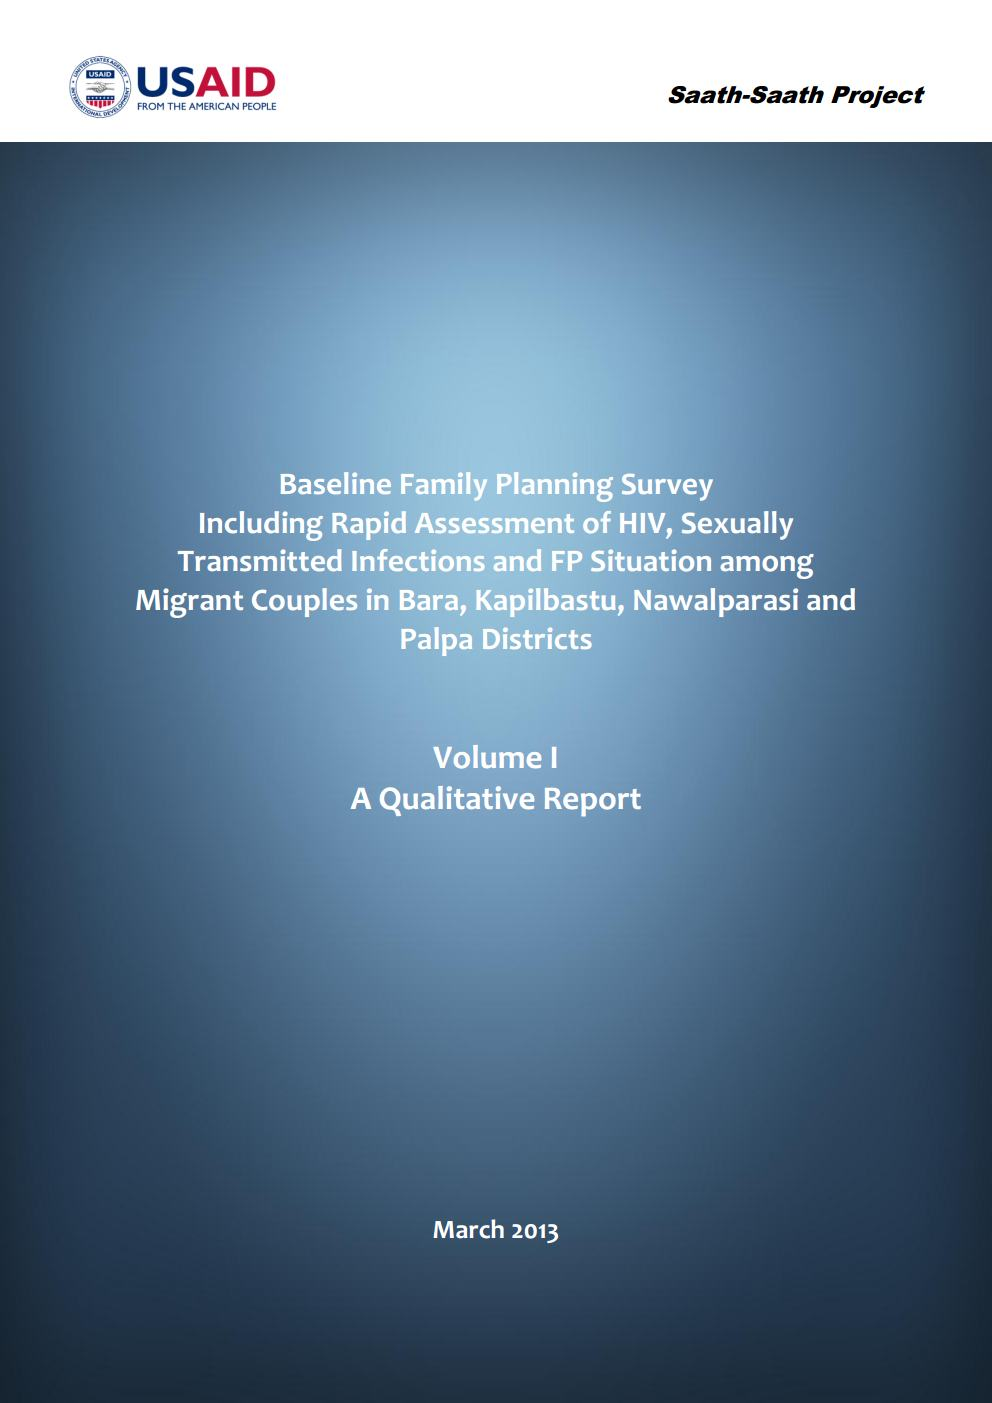 Baseline Family Planning (FP) Survey including Rapid Assessment of HIV, Sexually Transmitted Infections (STIs) and FP Situation among Migant Couples in Bara, Kapilvastu, Nawalparasi and Palpa Districts